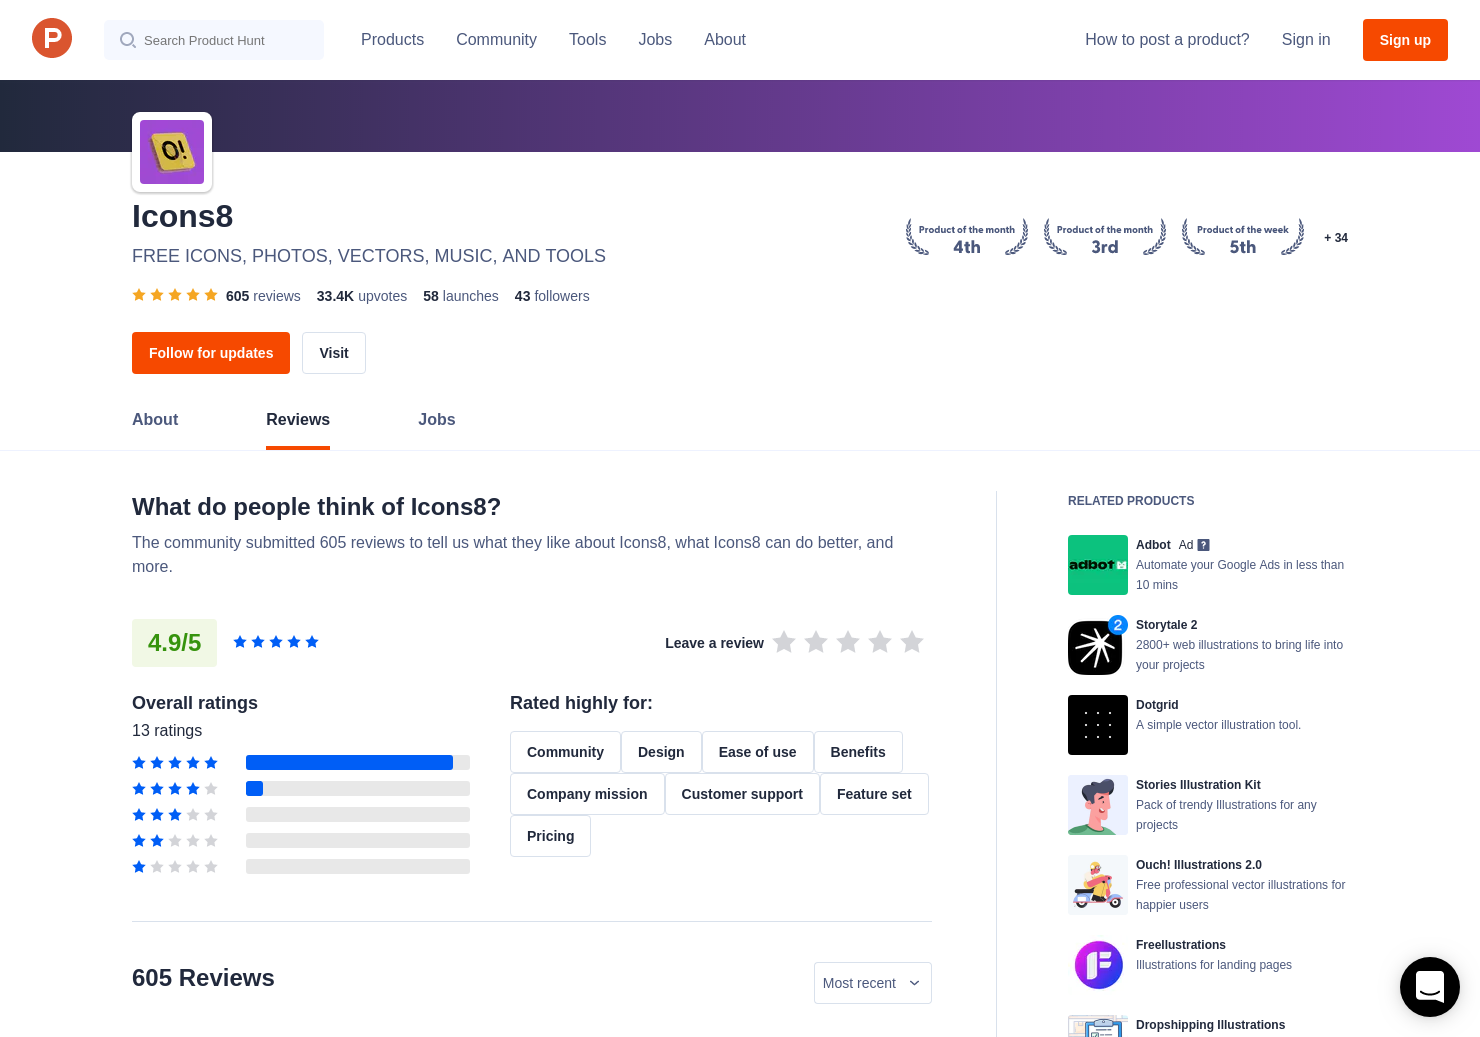 17 Icons8 Web App 2 0 Reviews - Pros, Cons and Rating | Product Hunt